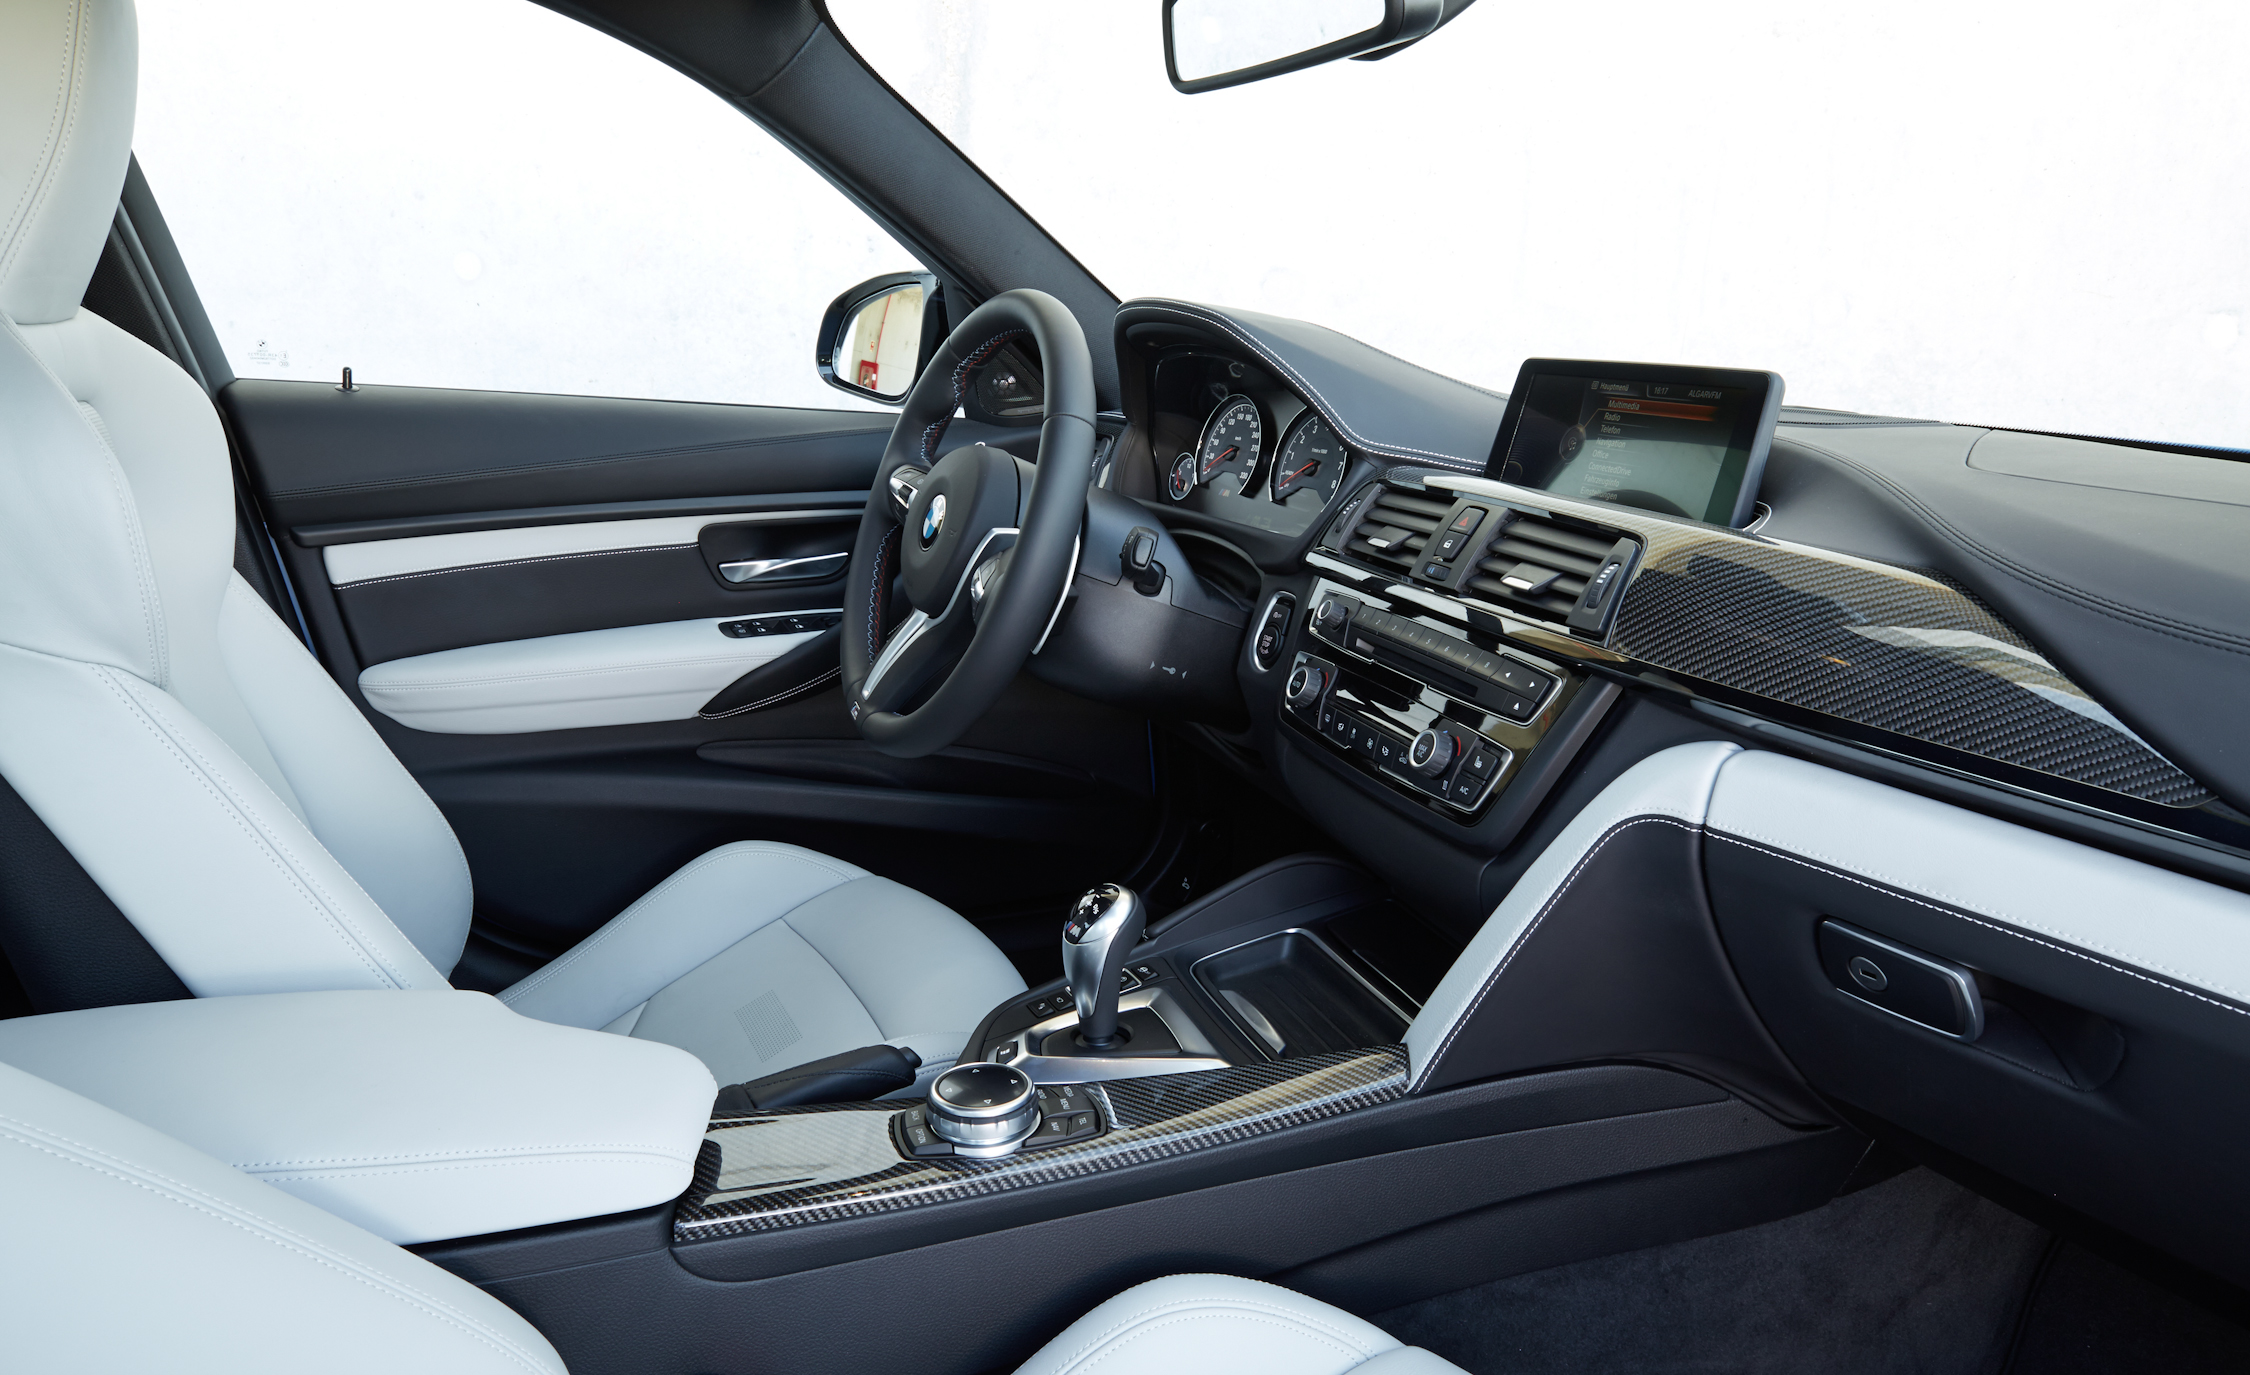 2015 BMW M3 Sedan Interior (Photo 32 of 55)